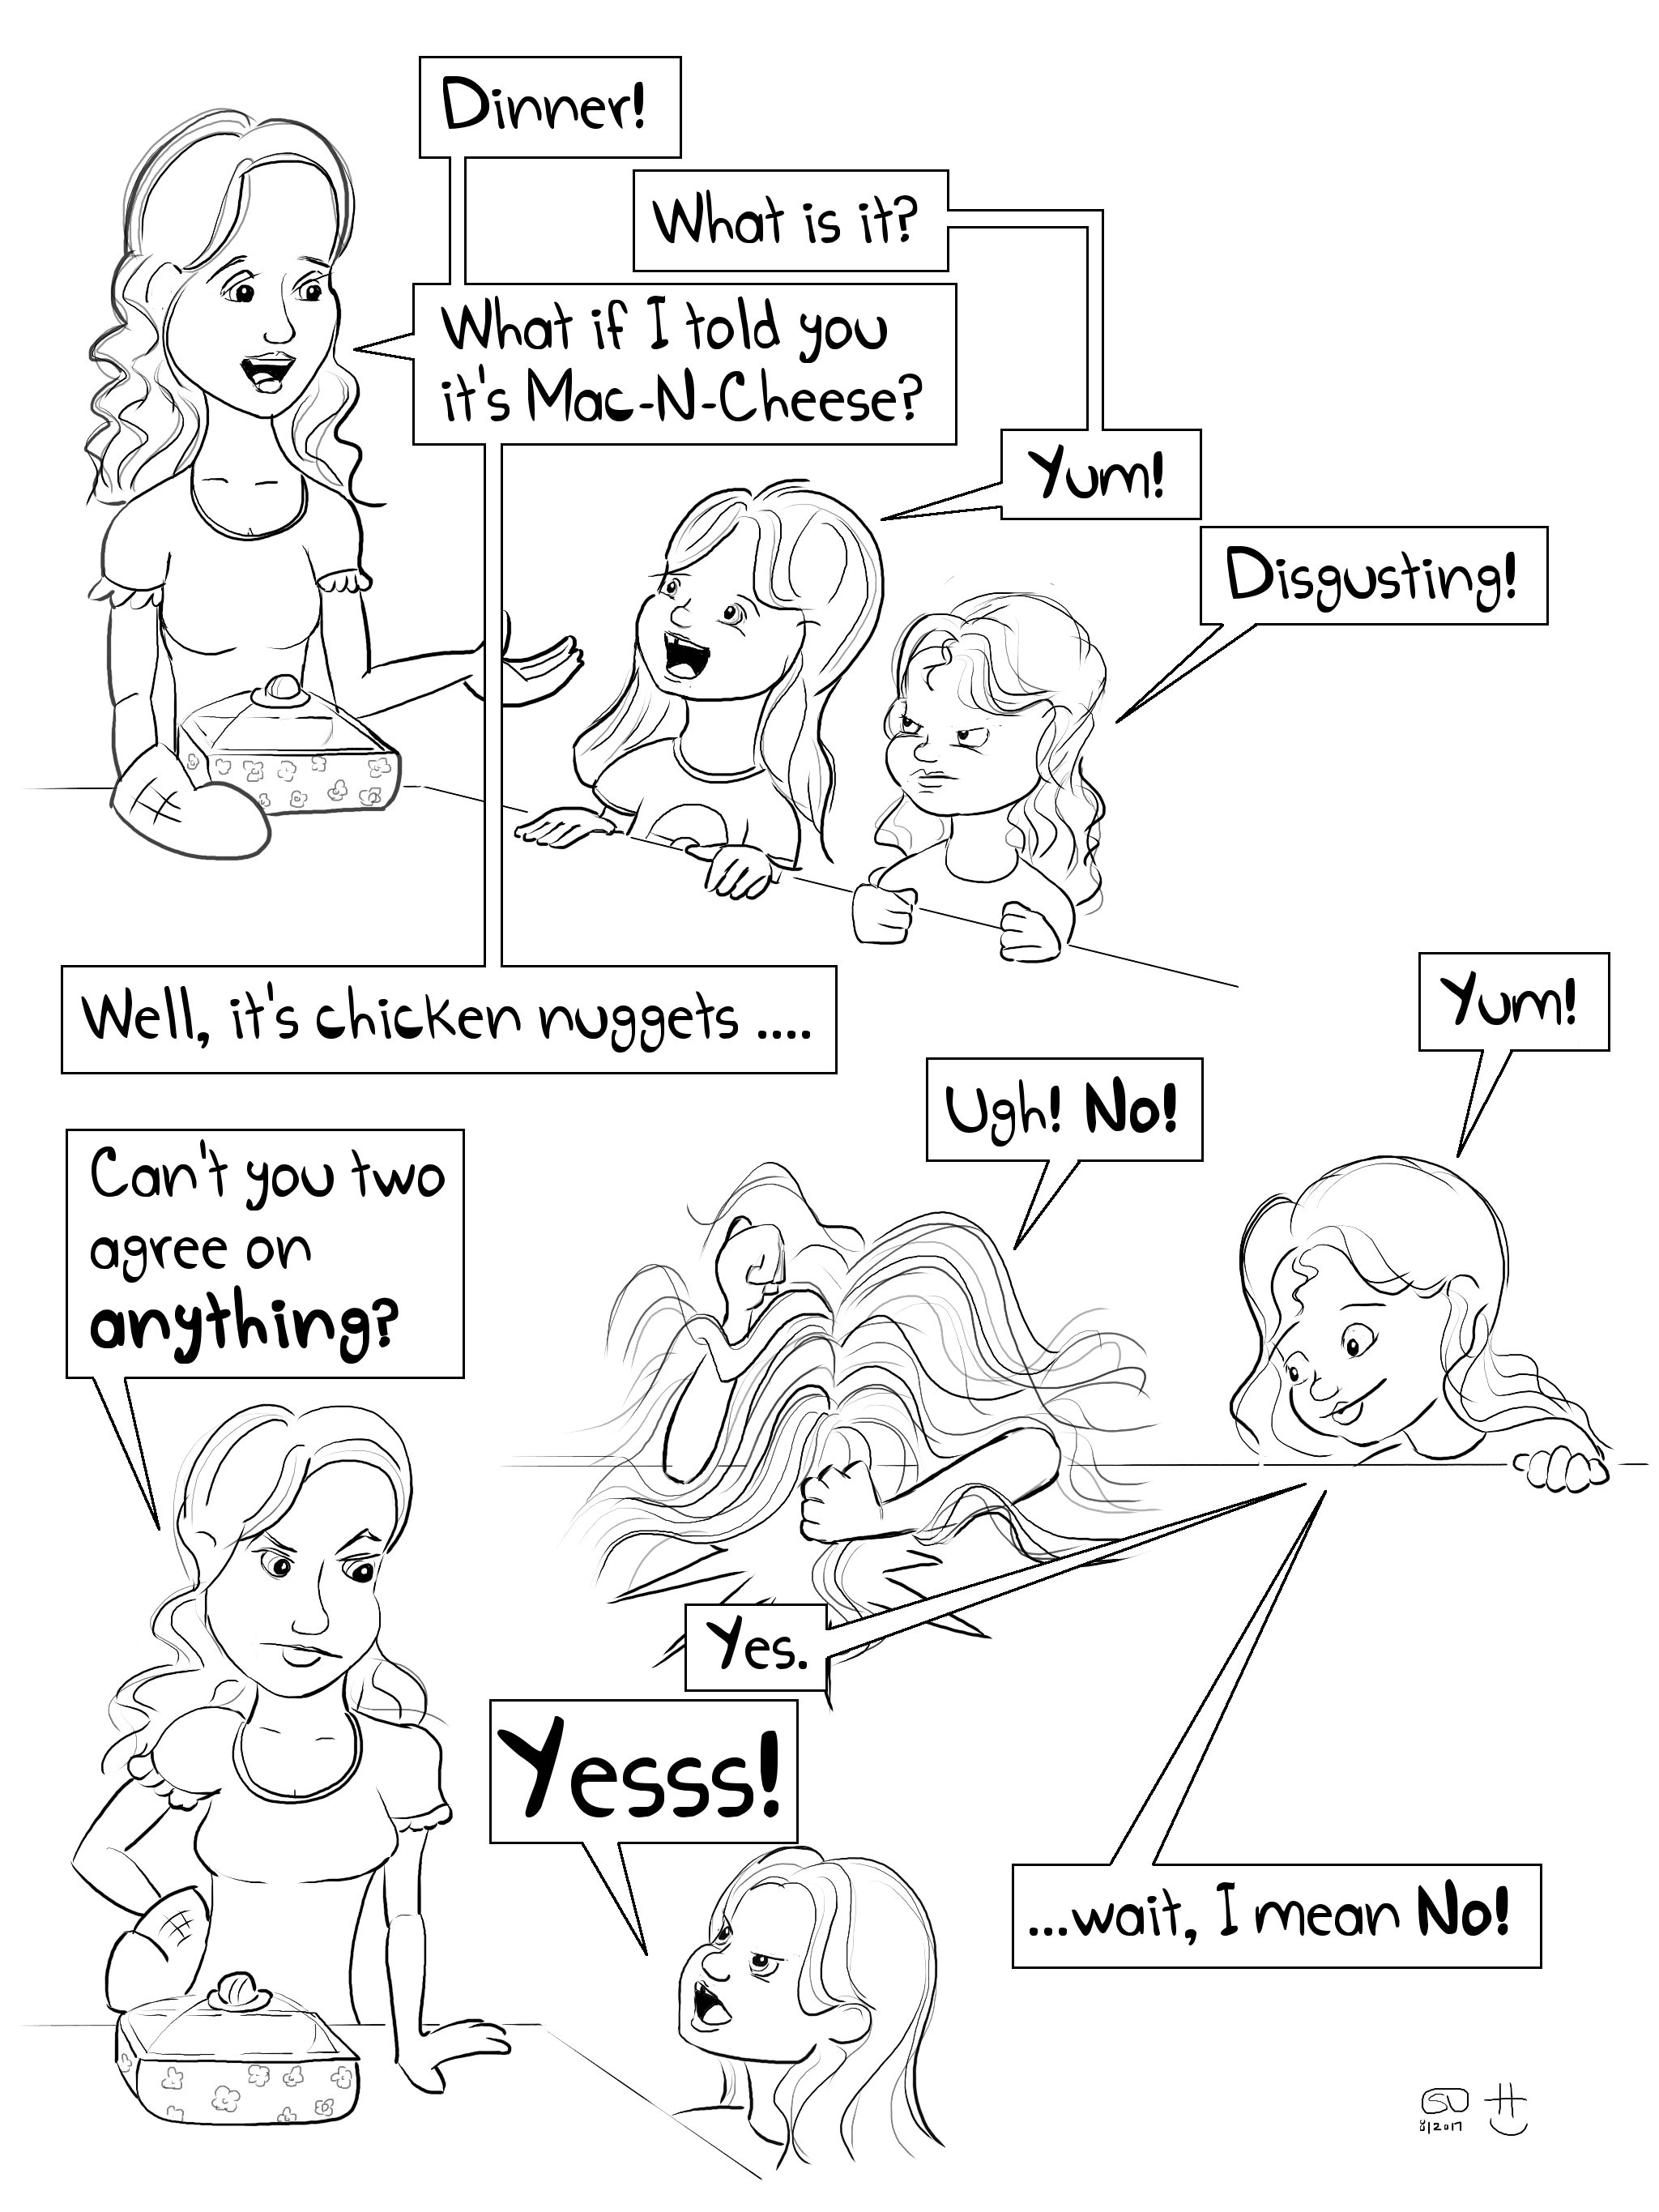 dinnertime food eating with kids picky finicky eater parenting fail comic